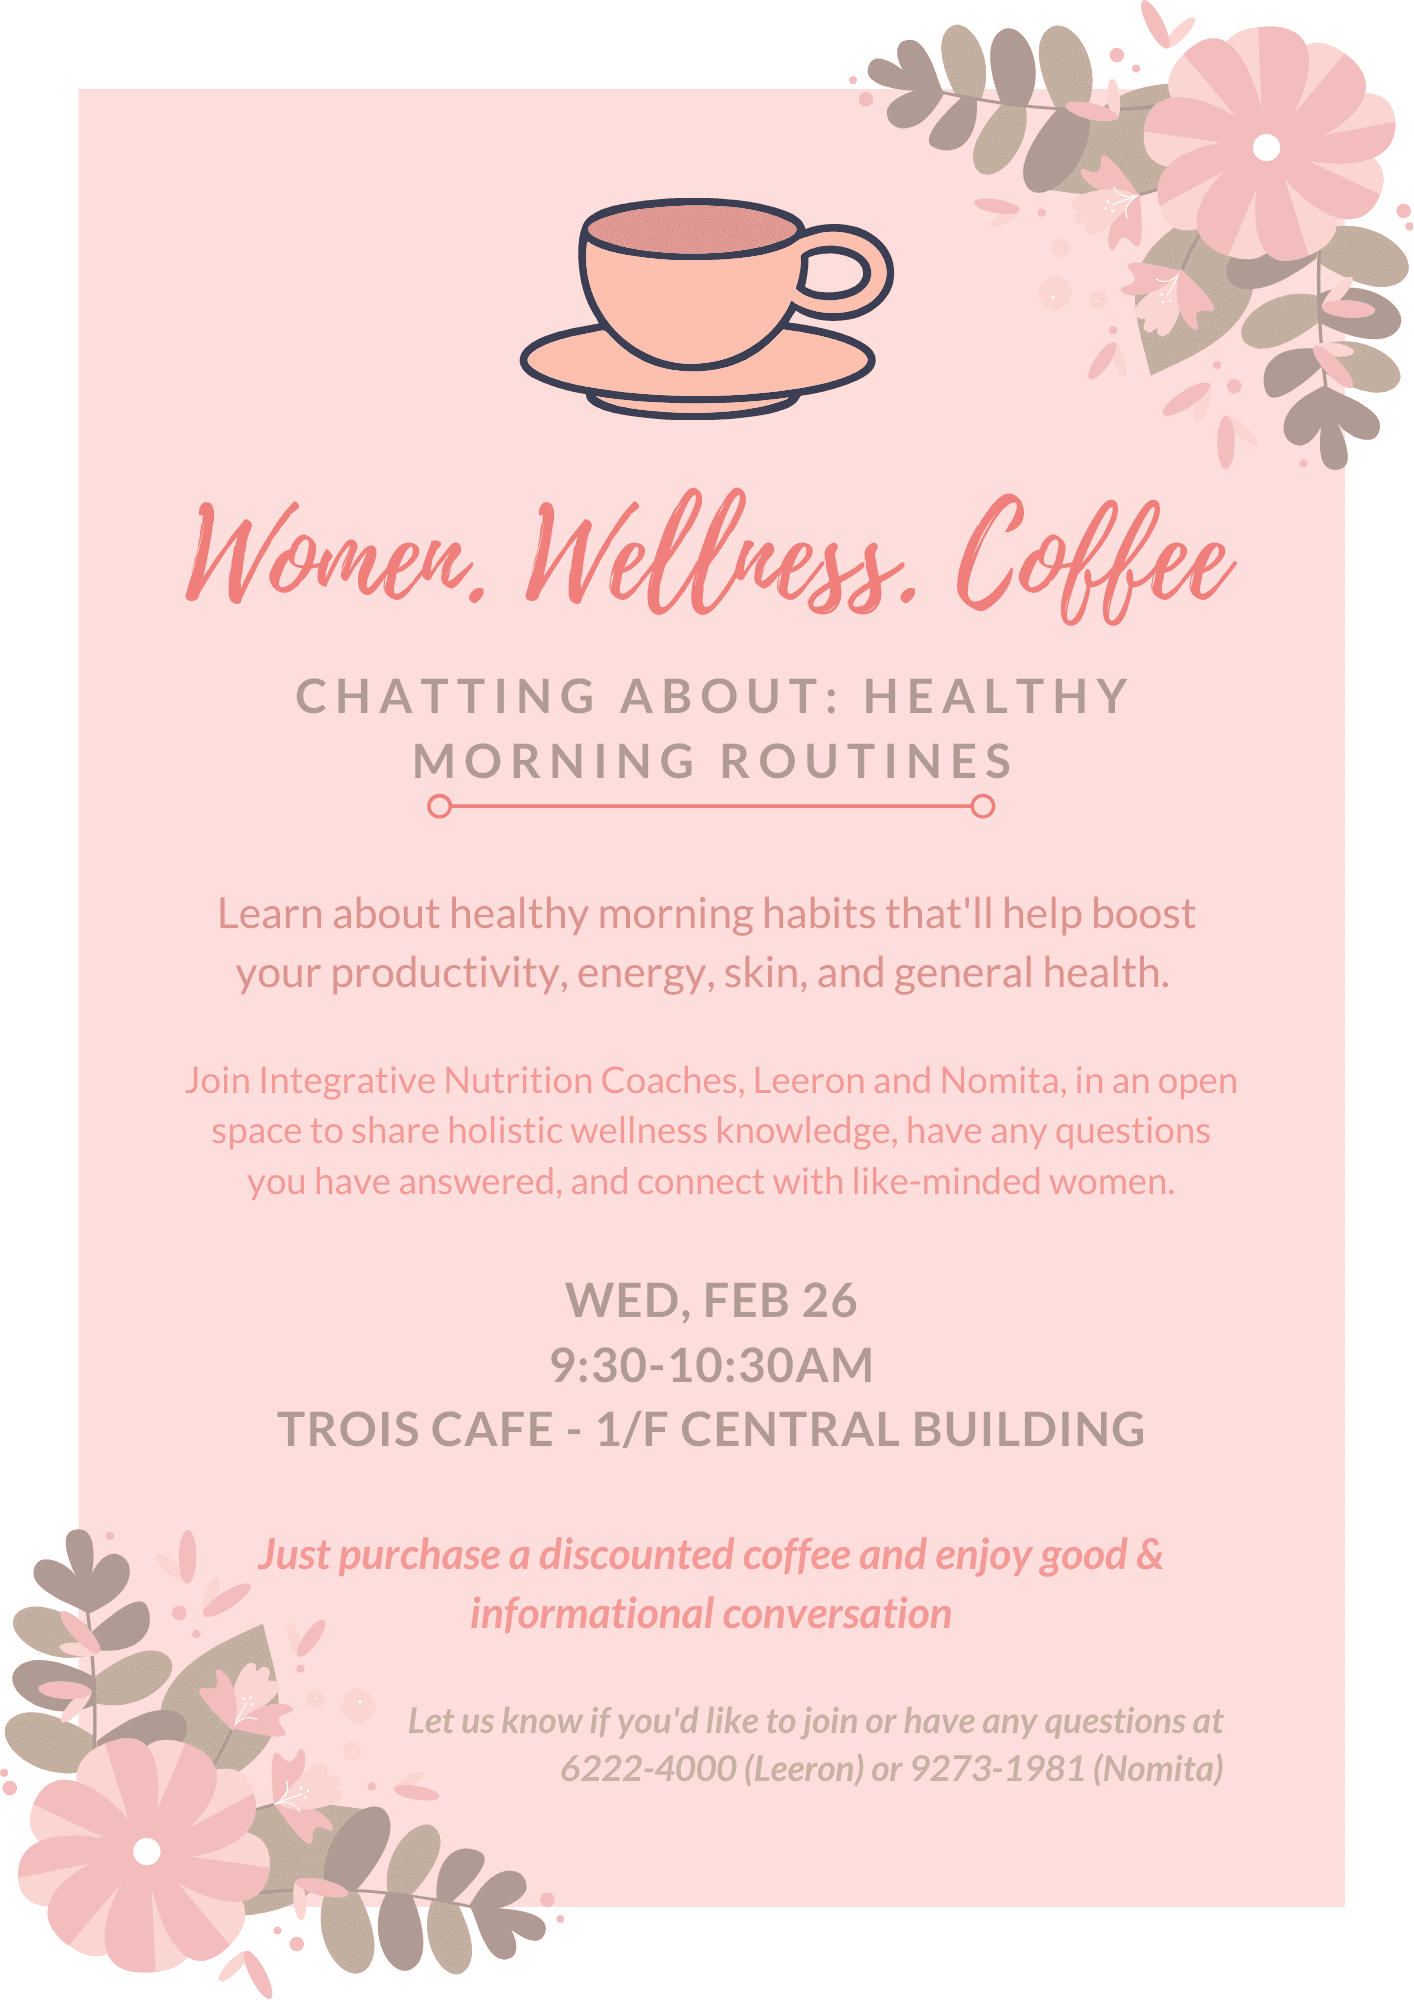 Women. Wellness. Coffee – Healthy Morning Routines for Improved Productivity, Energy, Skin.